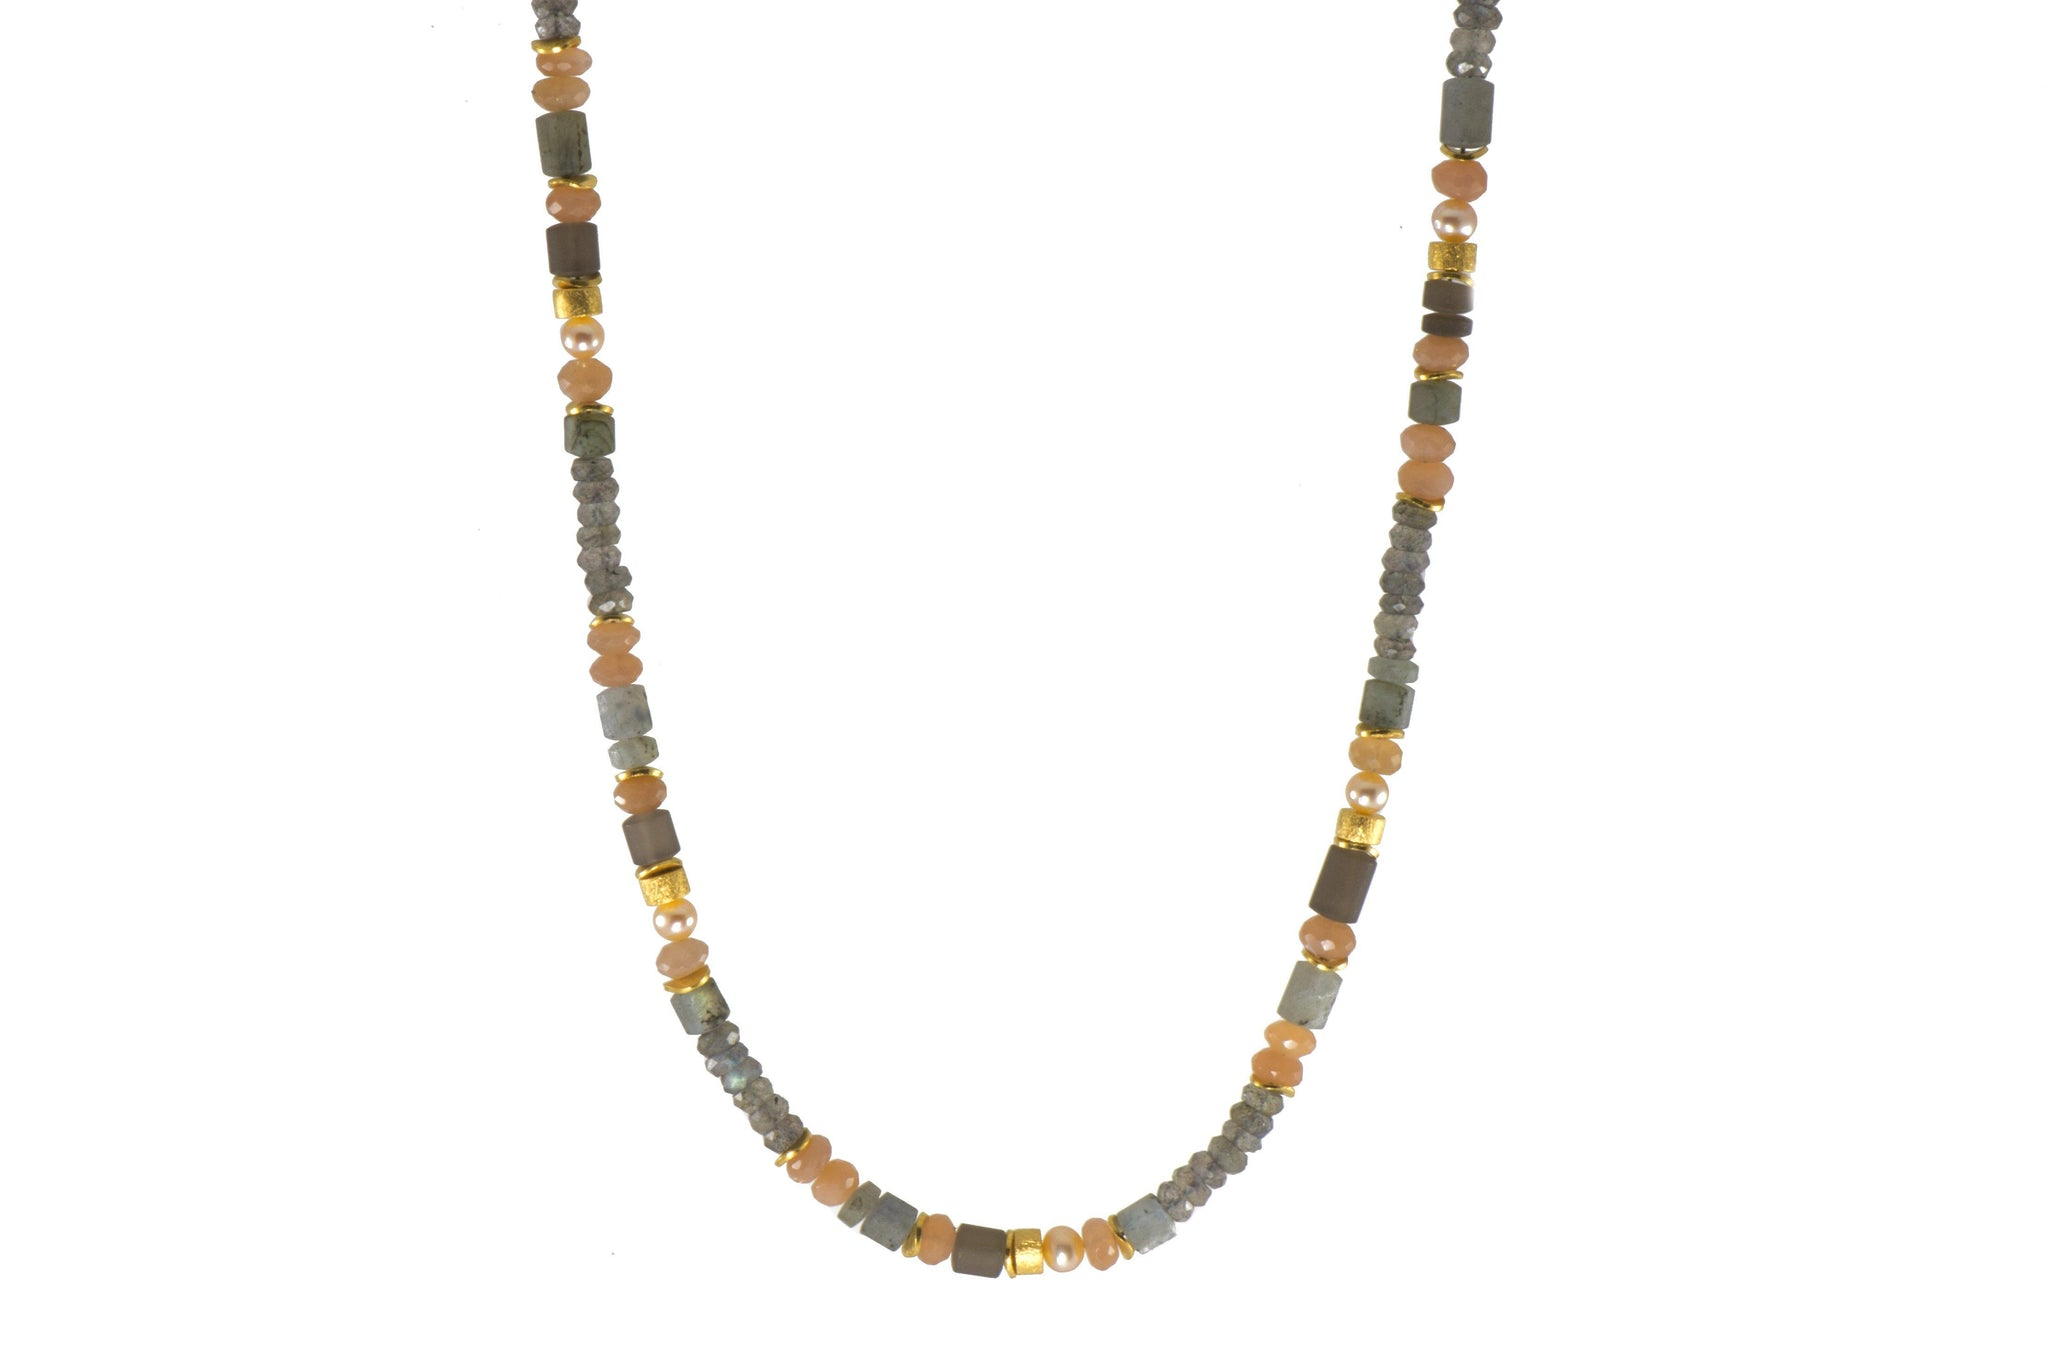 LABRADORITE, MOONSTONE, SMOKY QUARTZ & NATURAL COLORED PEARL NECKLACE 5MM FAIR TRADE 24K GOLD VERMEIL - Joyla Jewelry